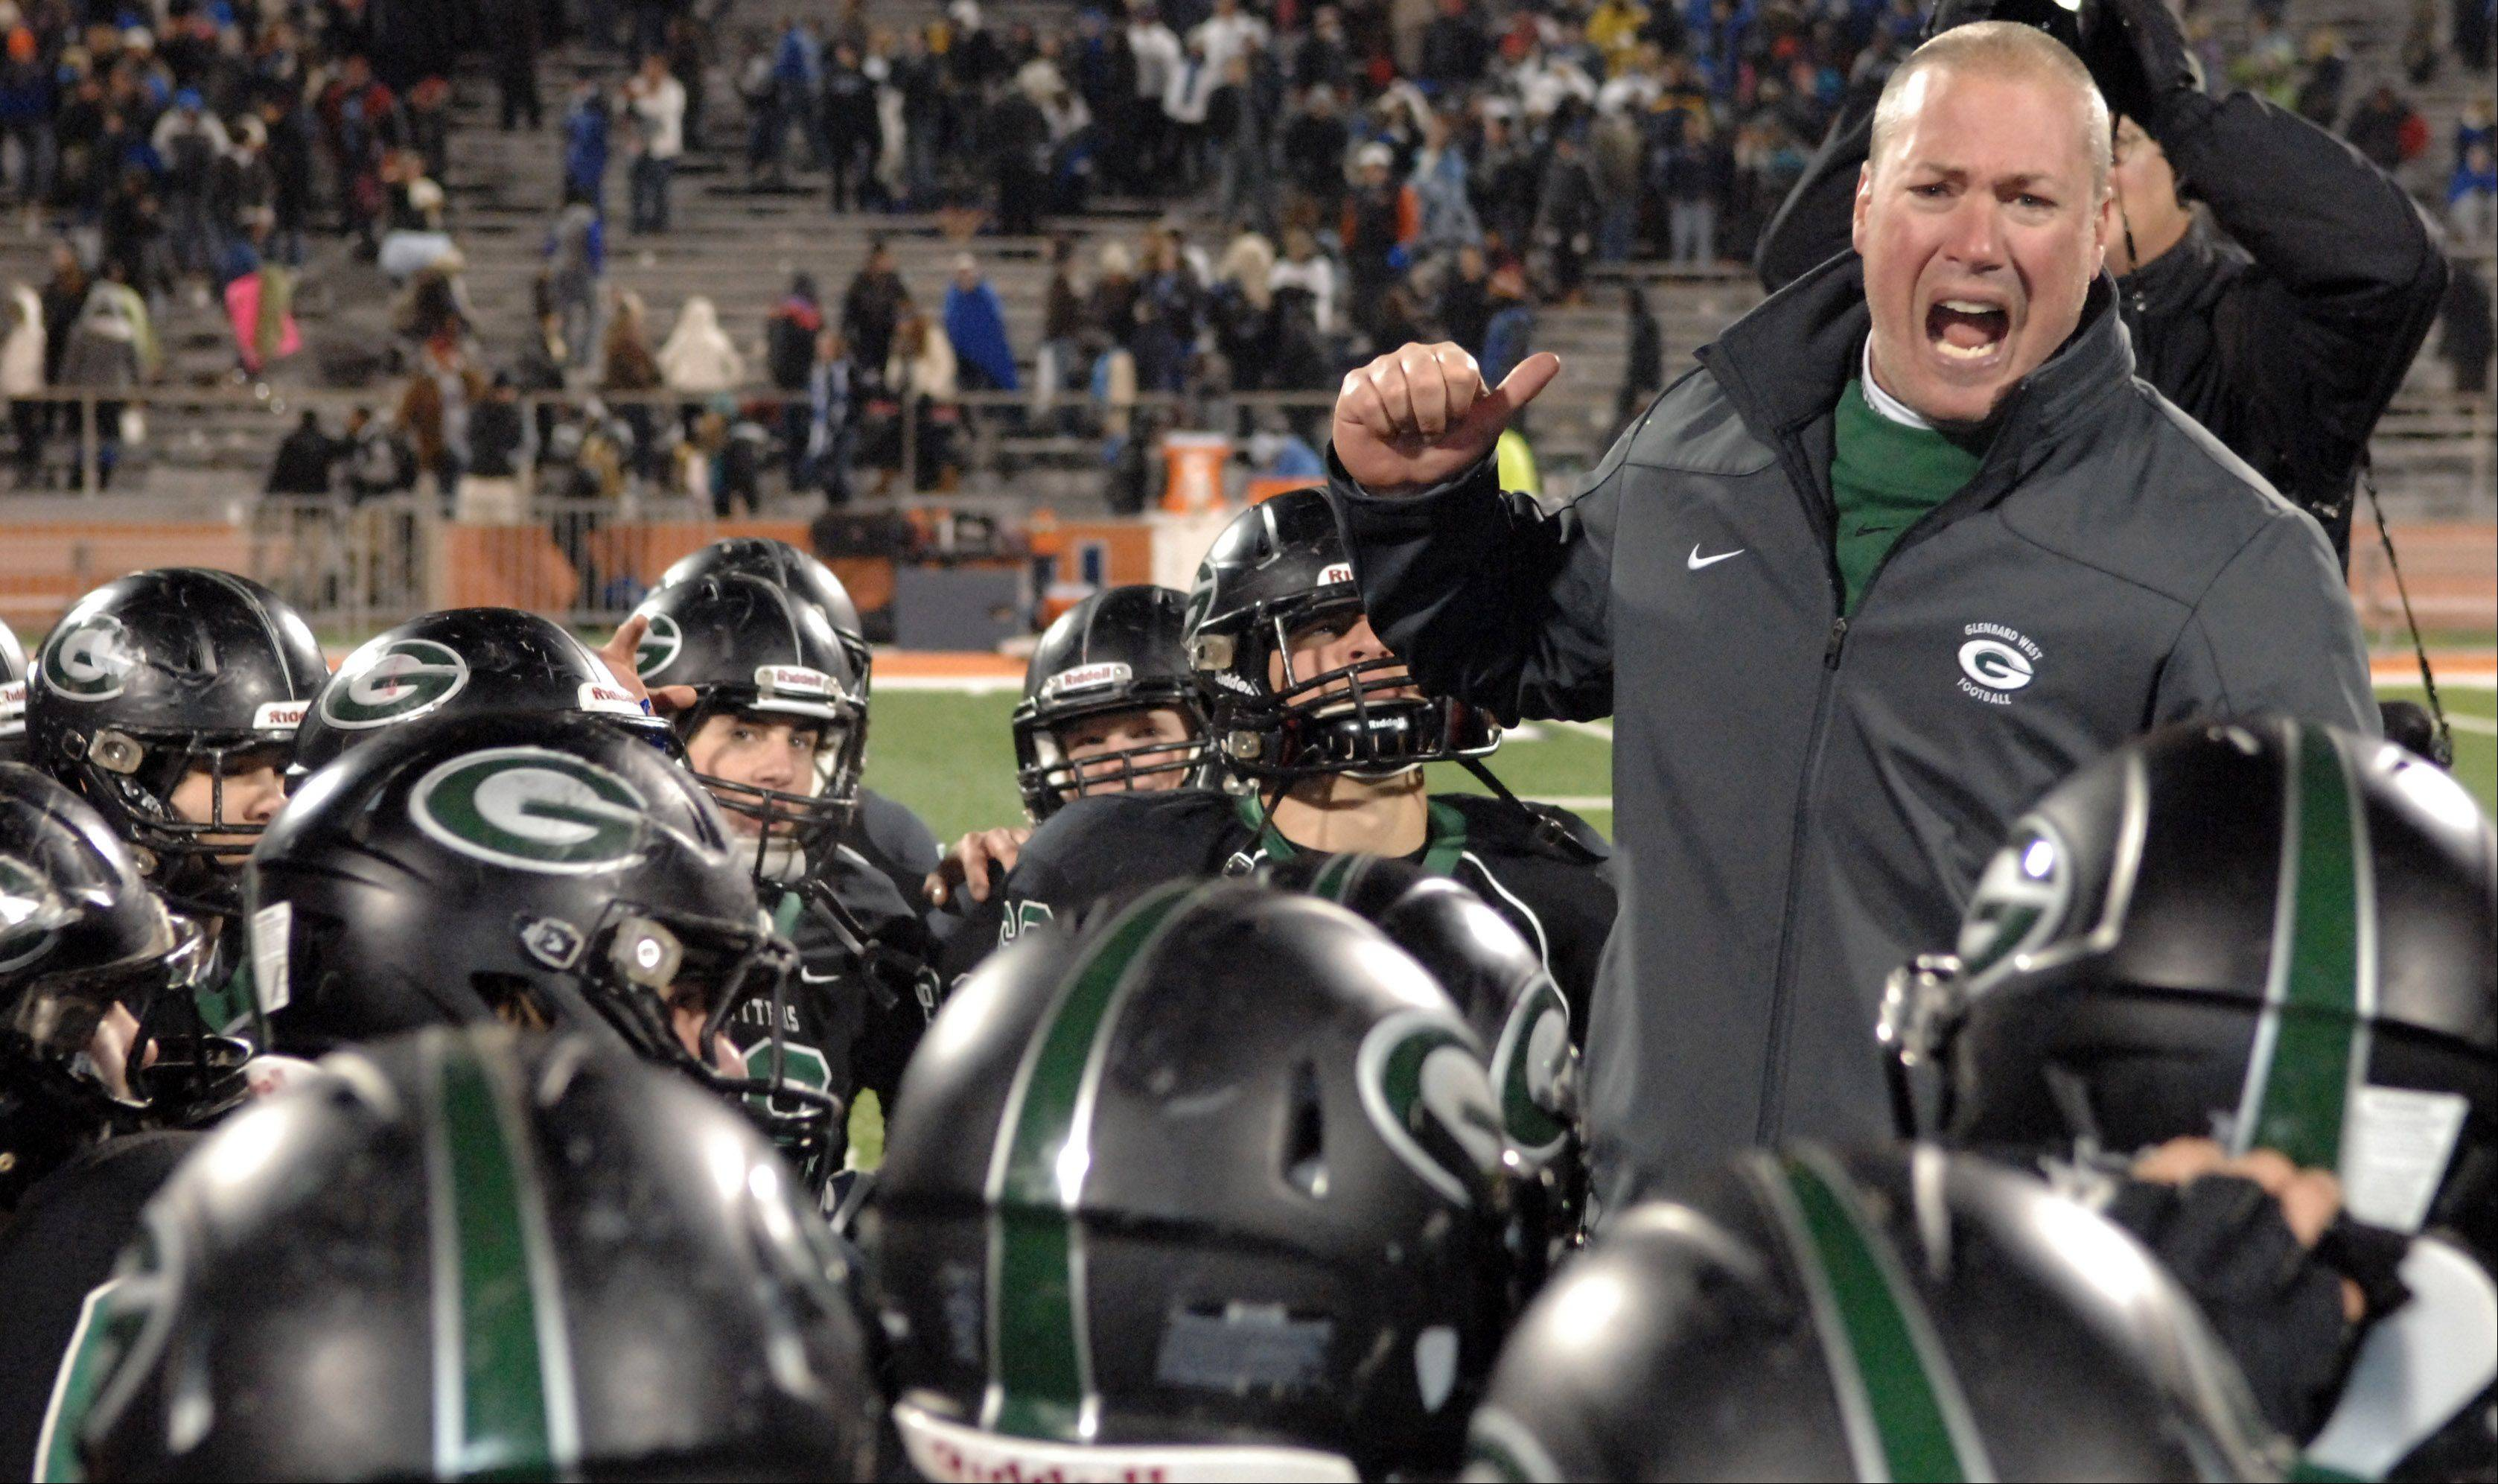 Images from the 7A state title game between Glenbard West and Lincoln-Way East Saturday in Champaign, November 24, 2012.